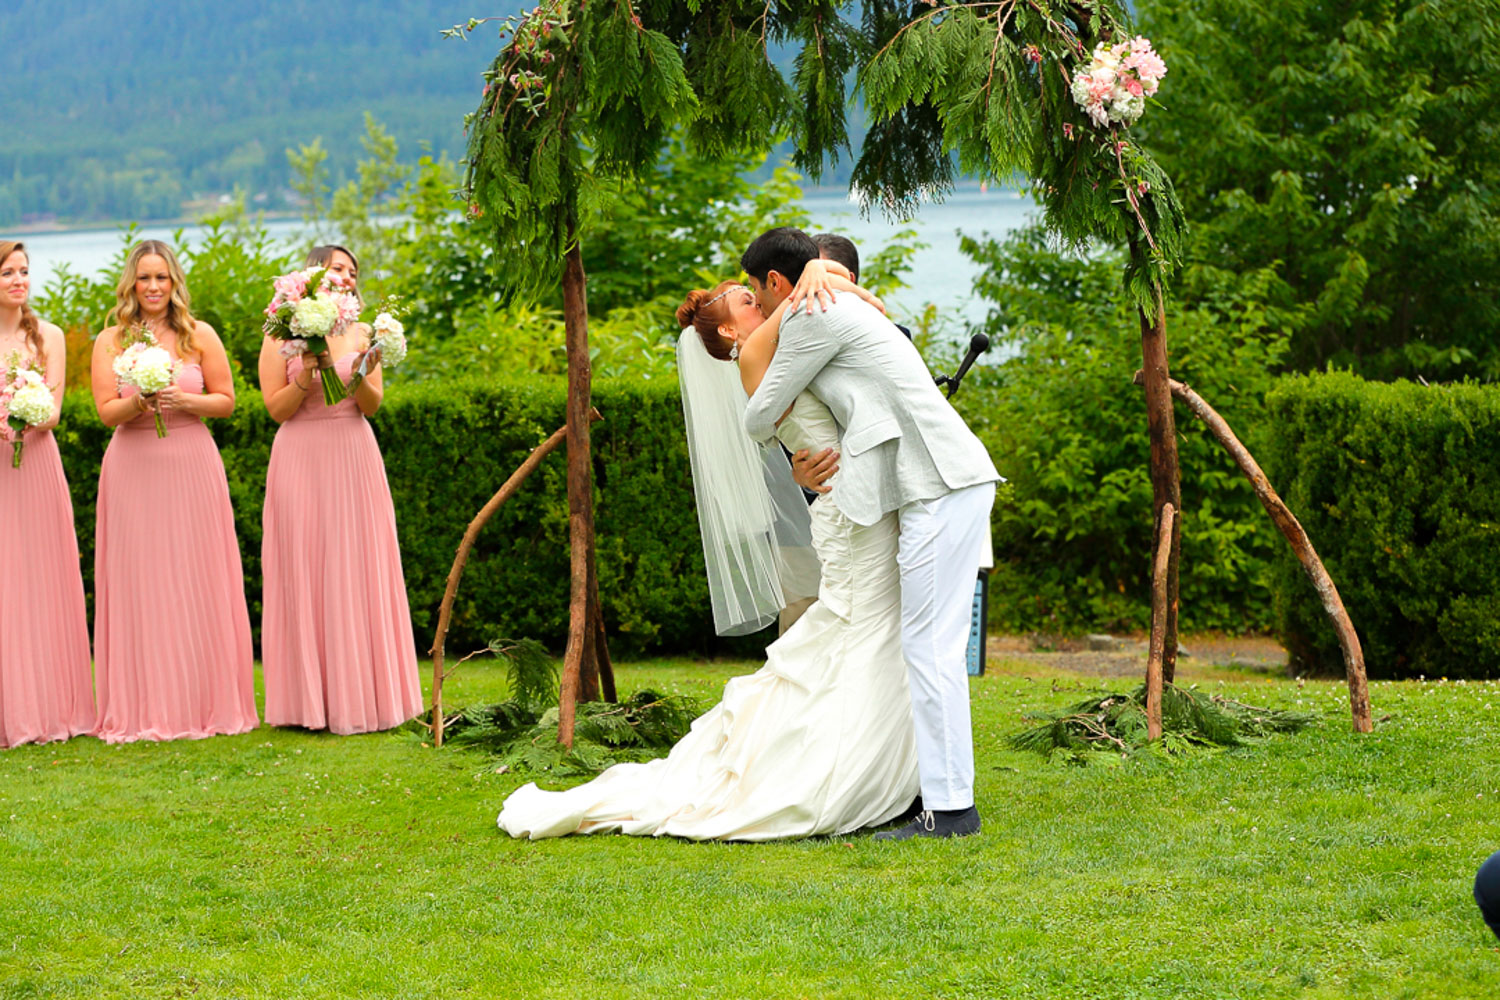 Wedding Photos Lake Quinault Lodge Washington35.jpg